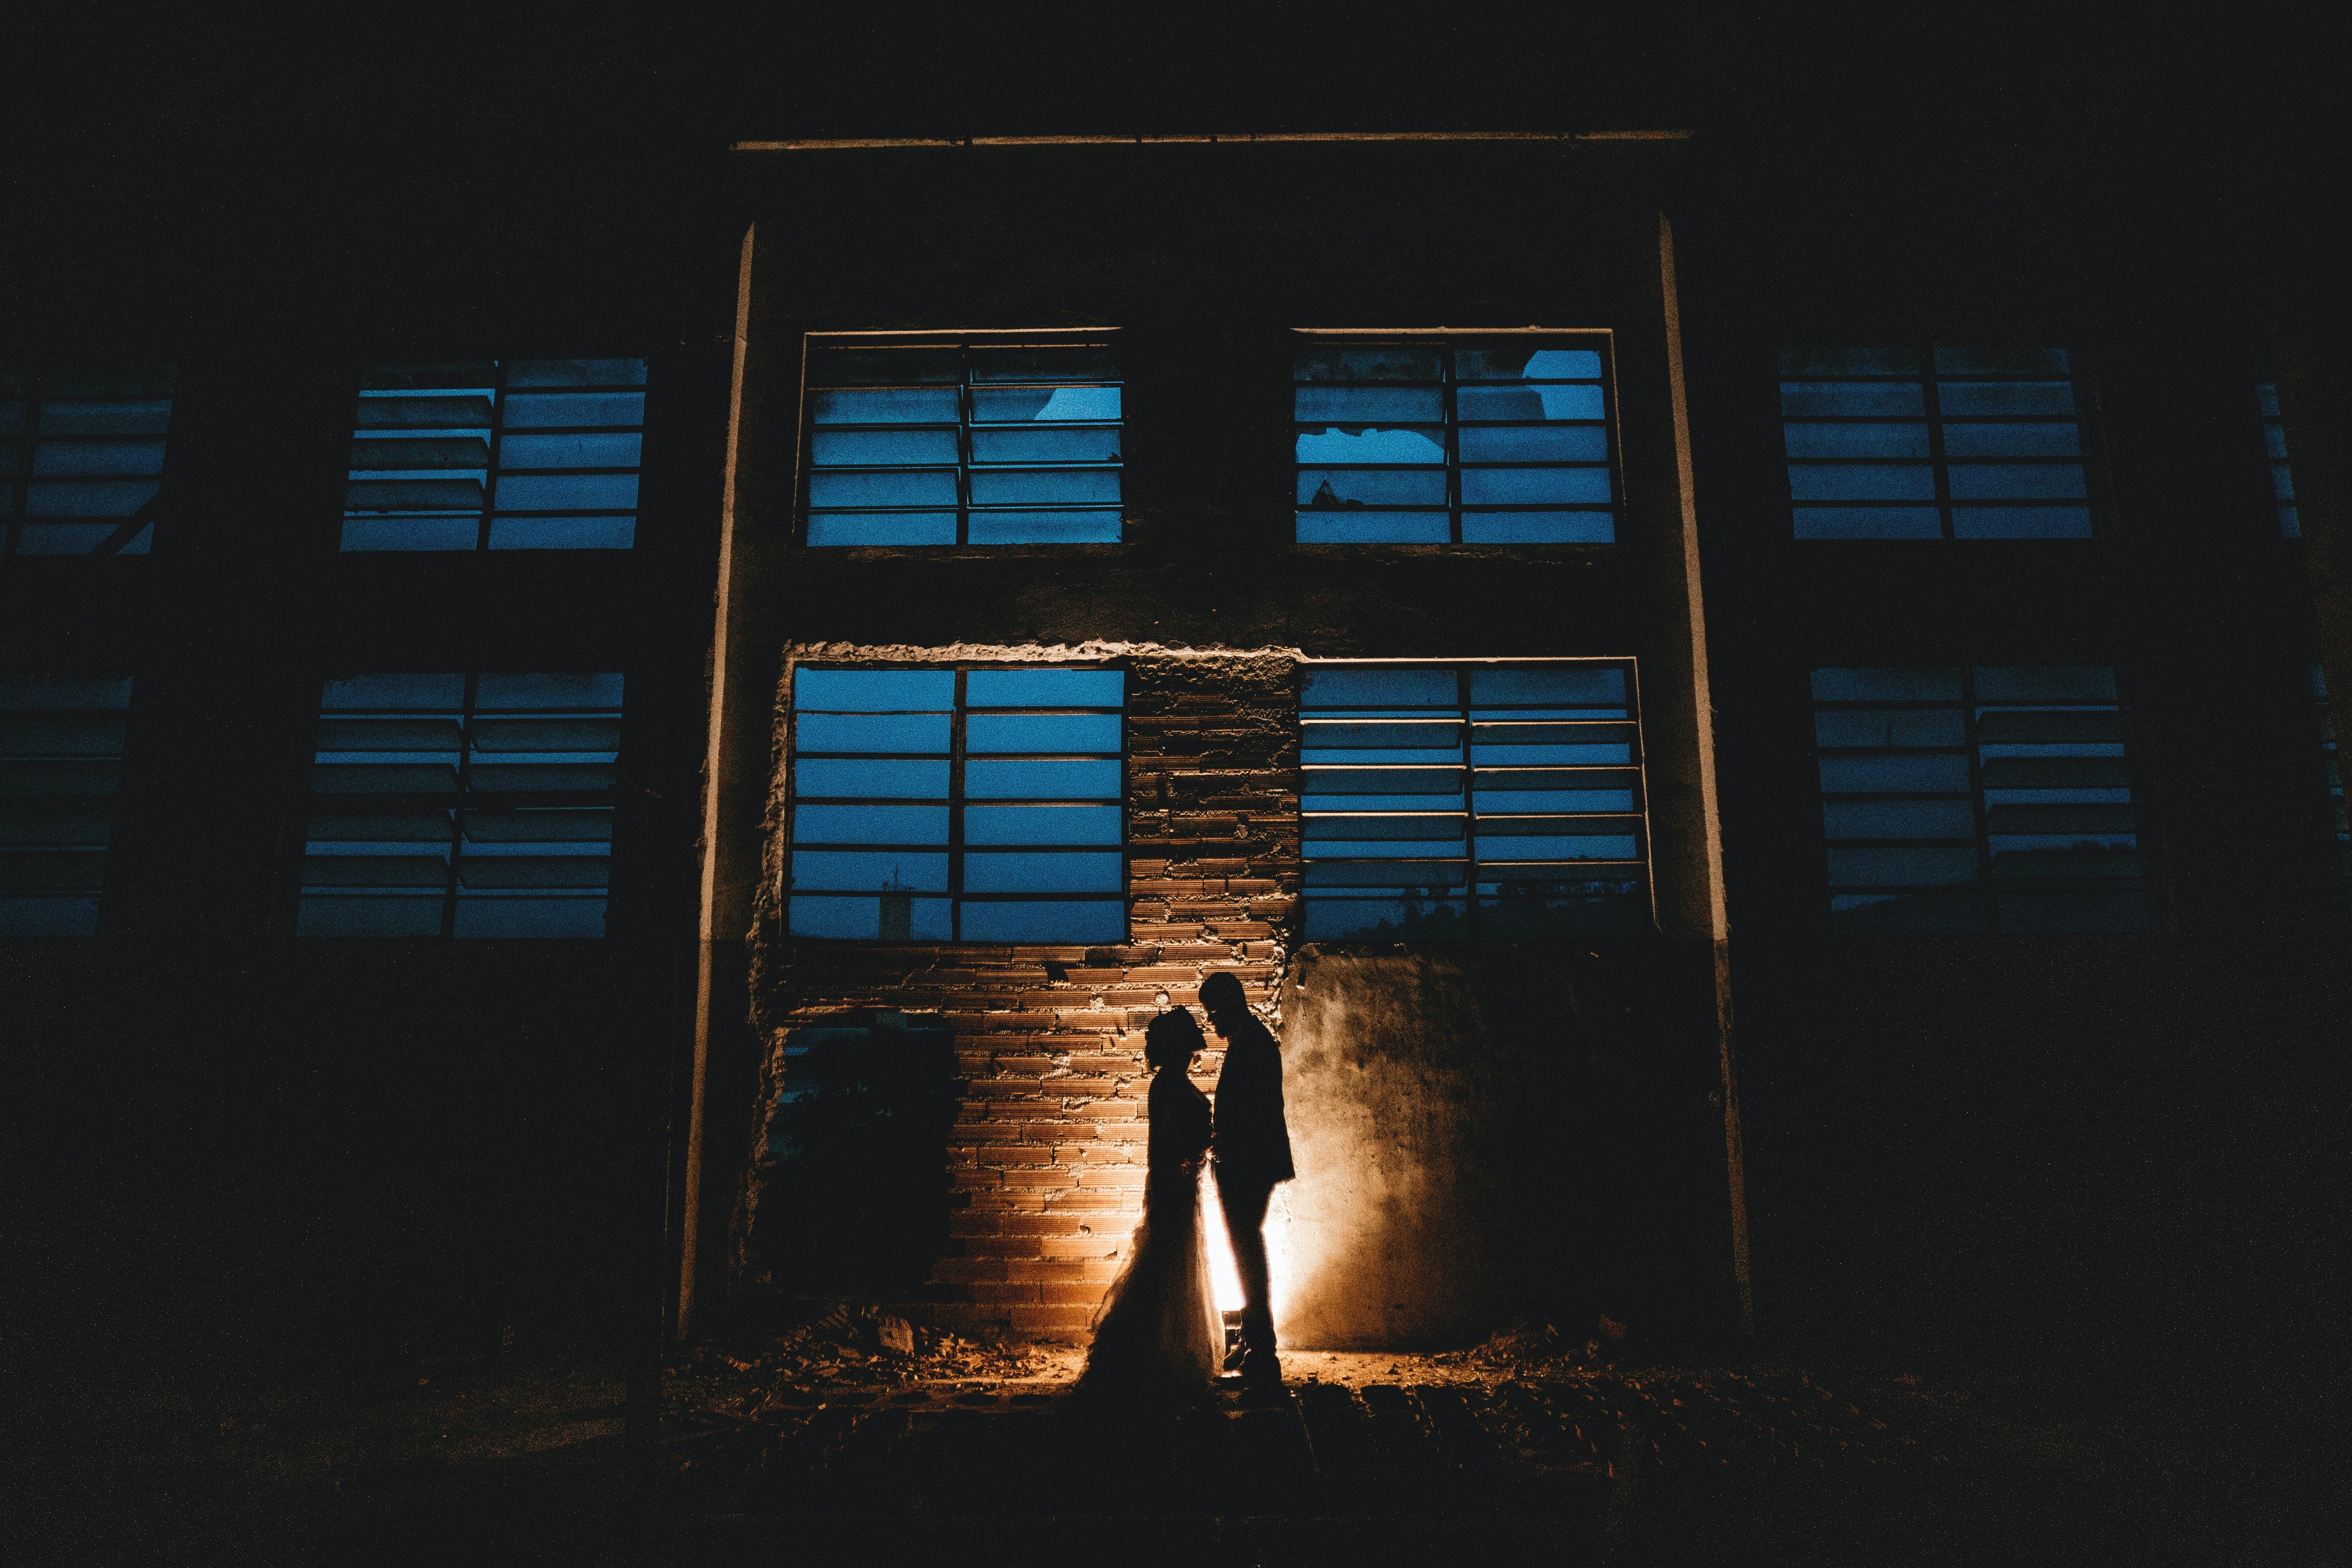 silhouette of man and woman standing beside building